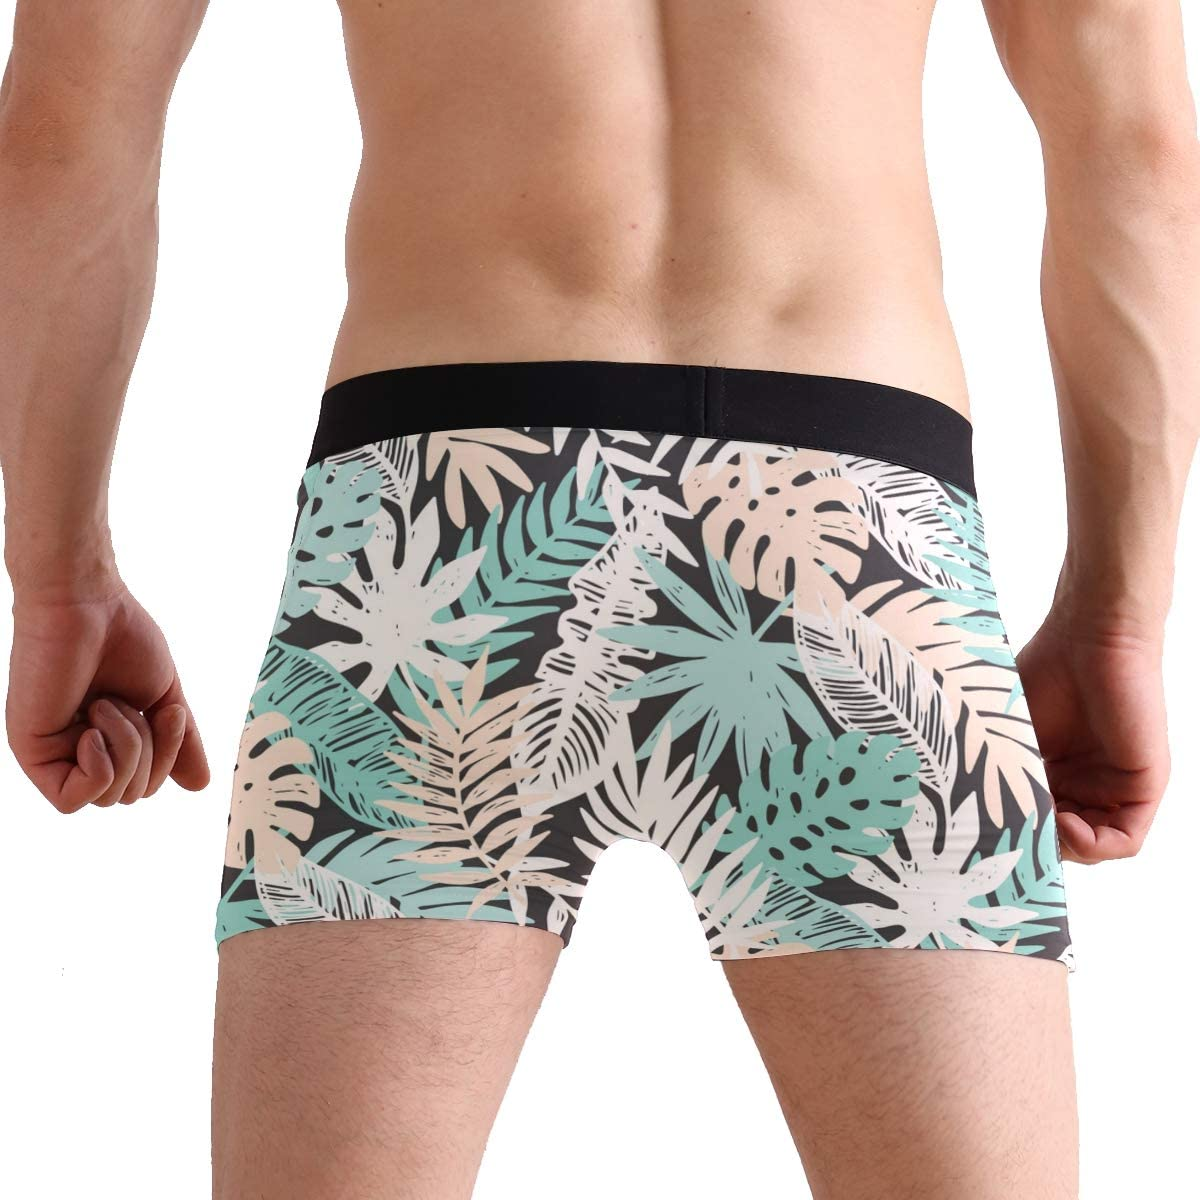 SUABO Mens 2-Pack Boxer Briefs Polyester Underwear Trunk Underwear with Tropical Leaves Design